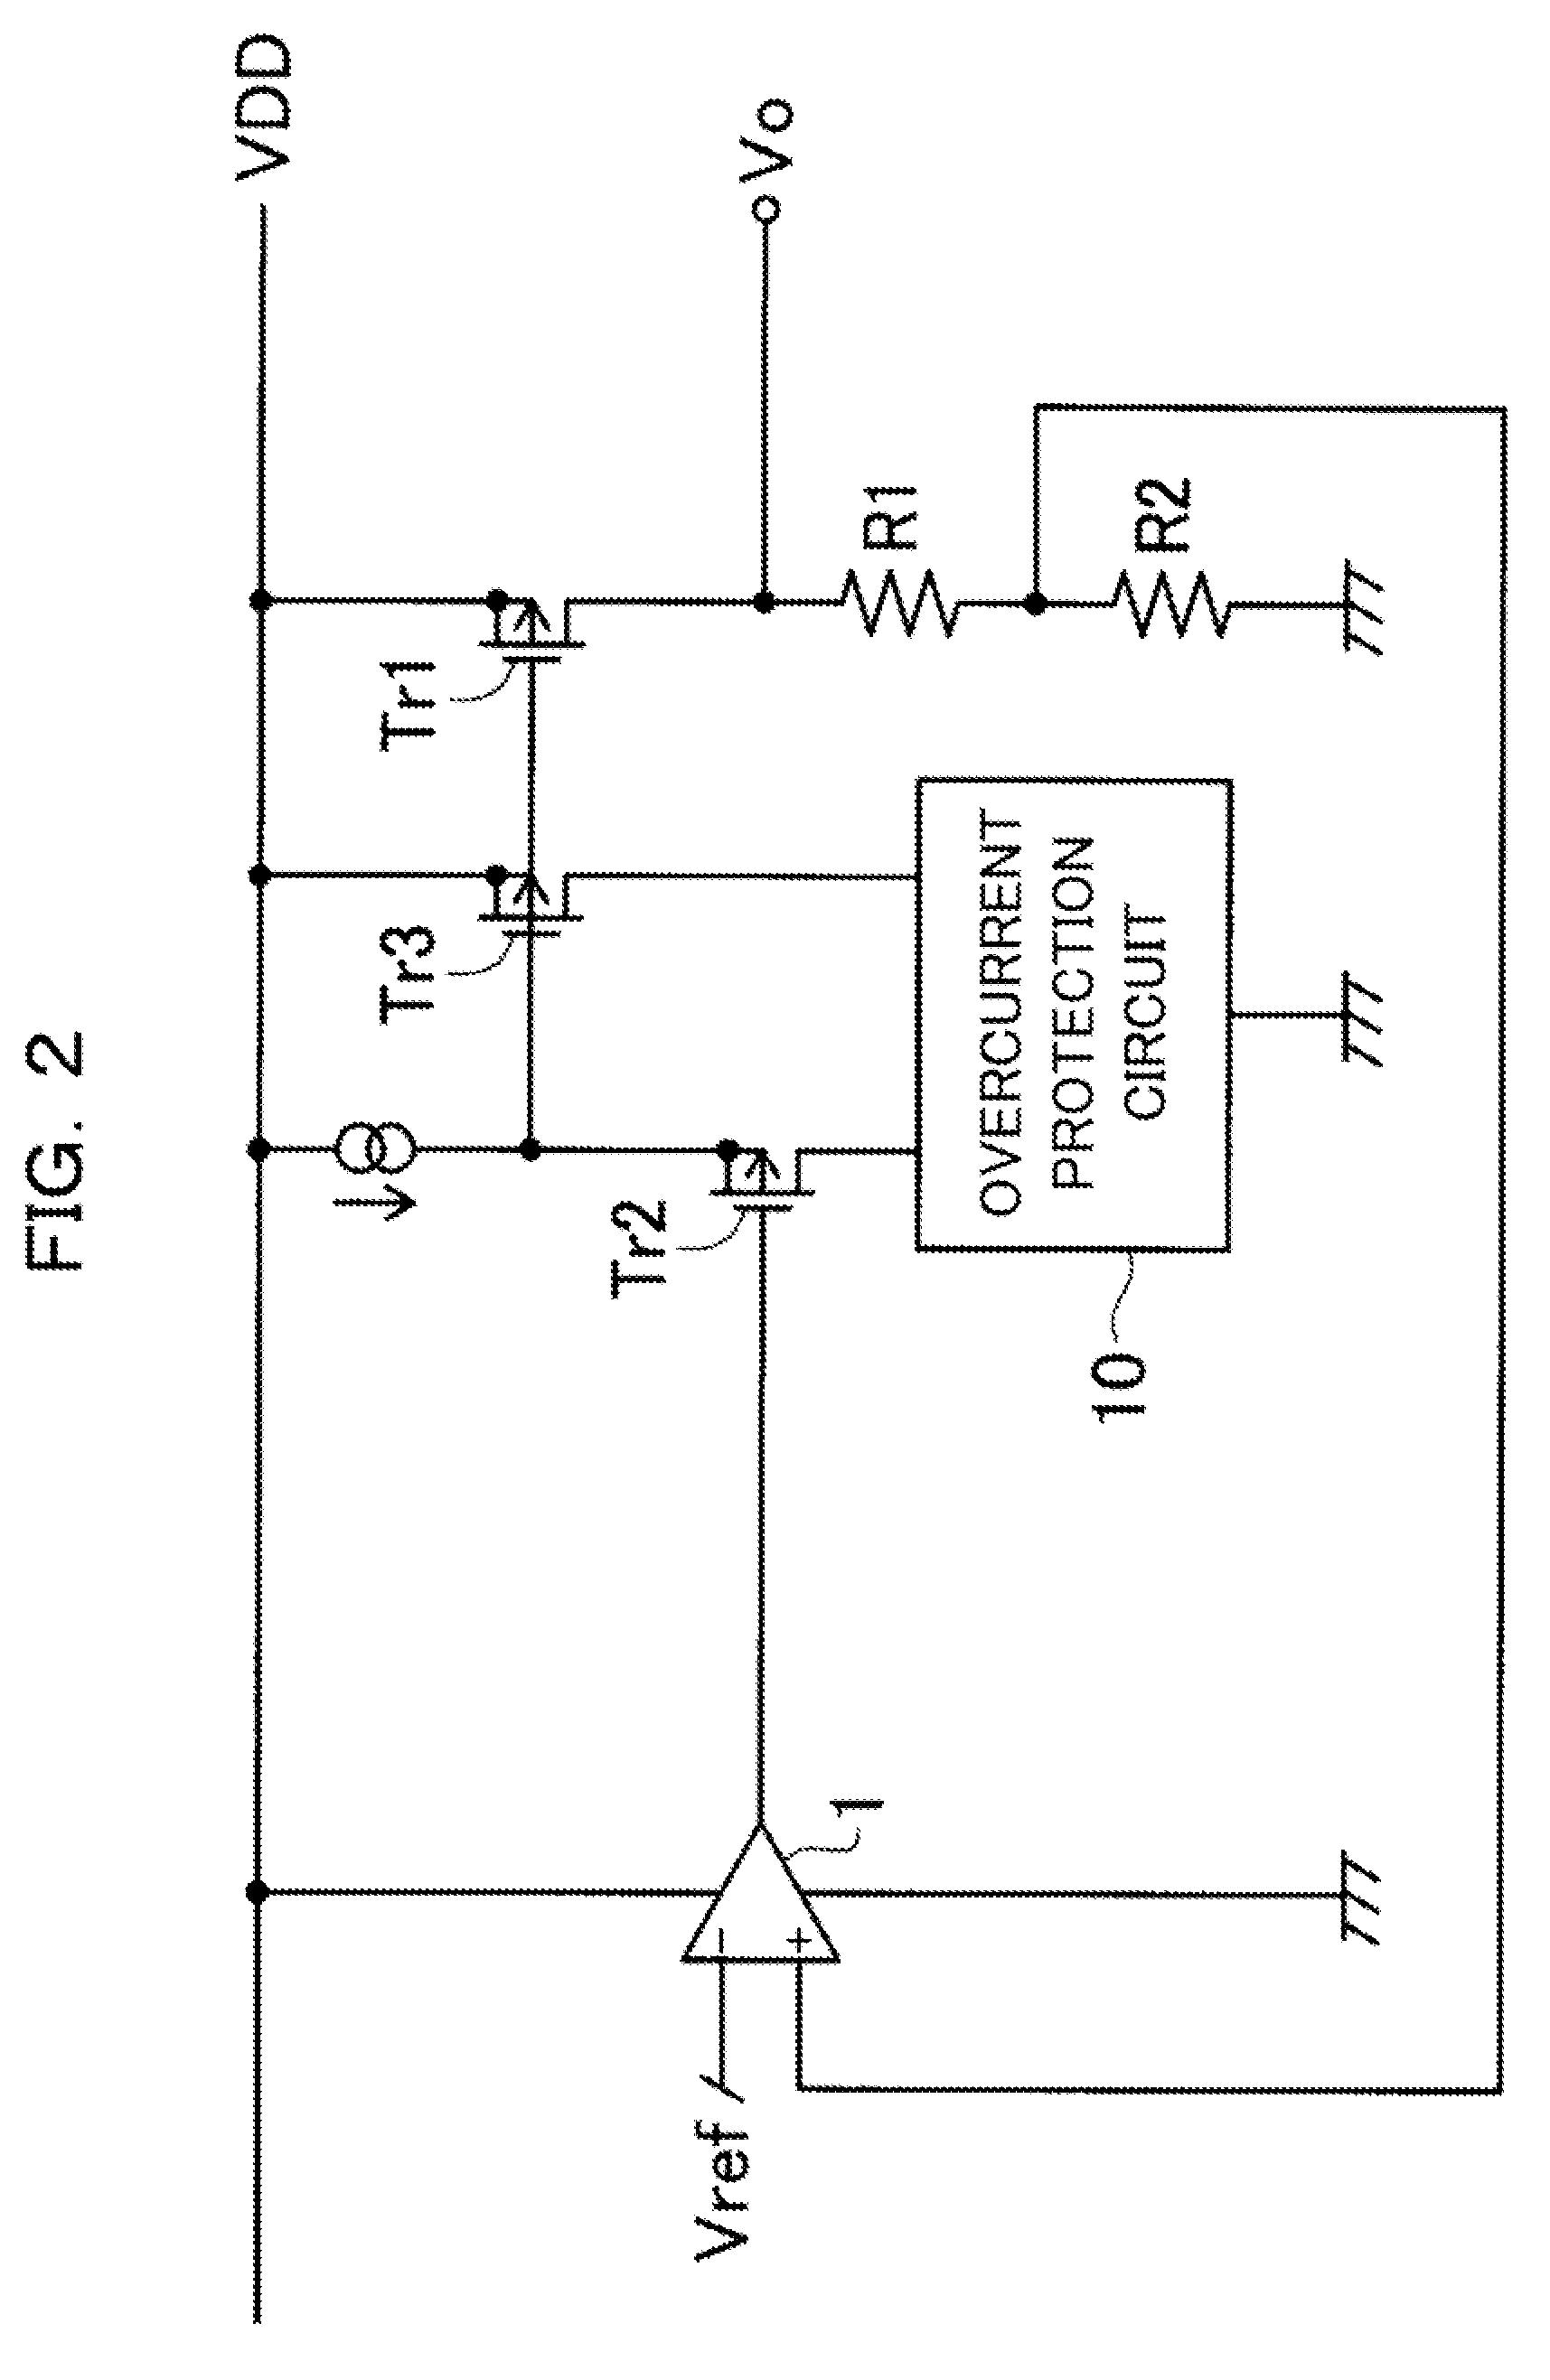 Brevet Us20090201618 Power Supply Circuit Overcurrent Protection Patent Drawing